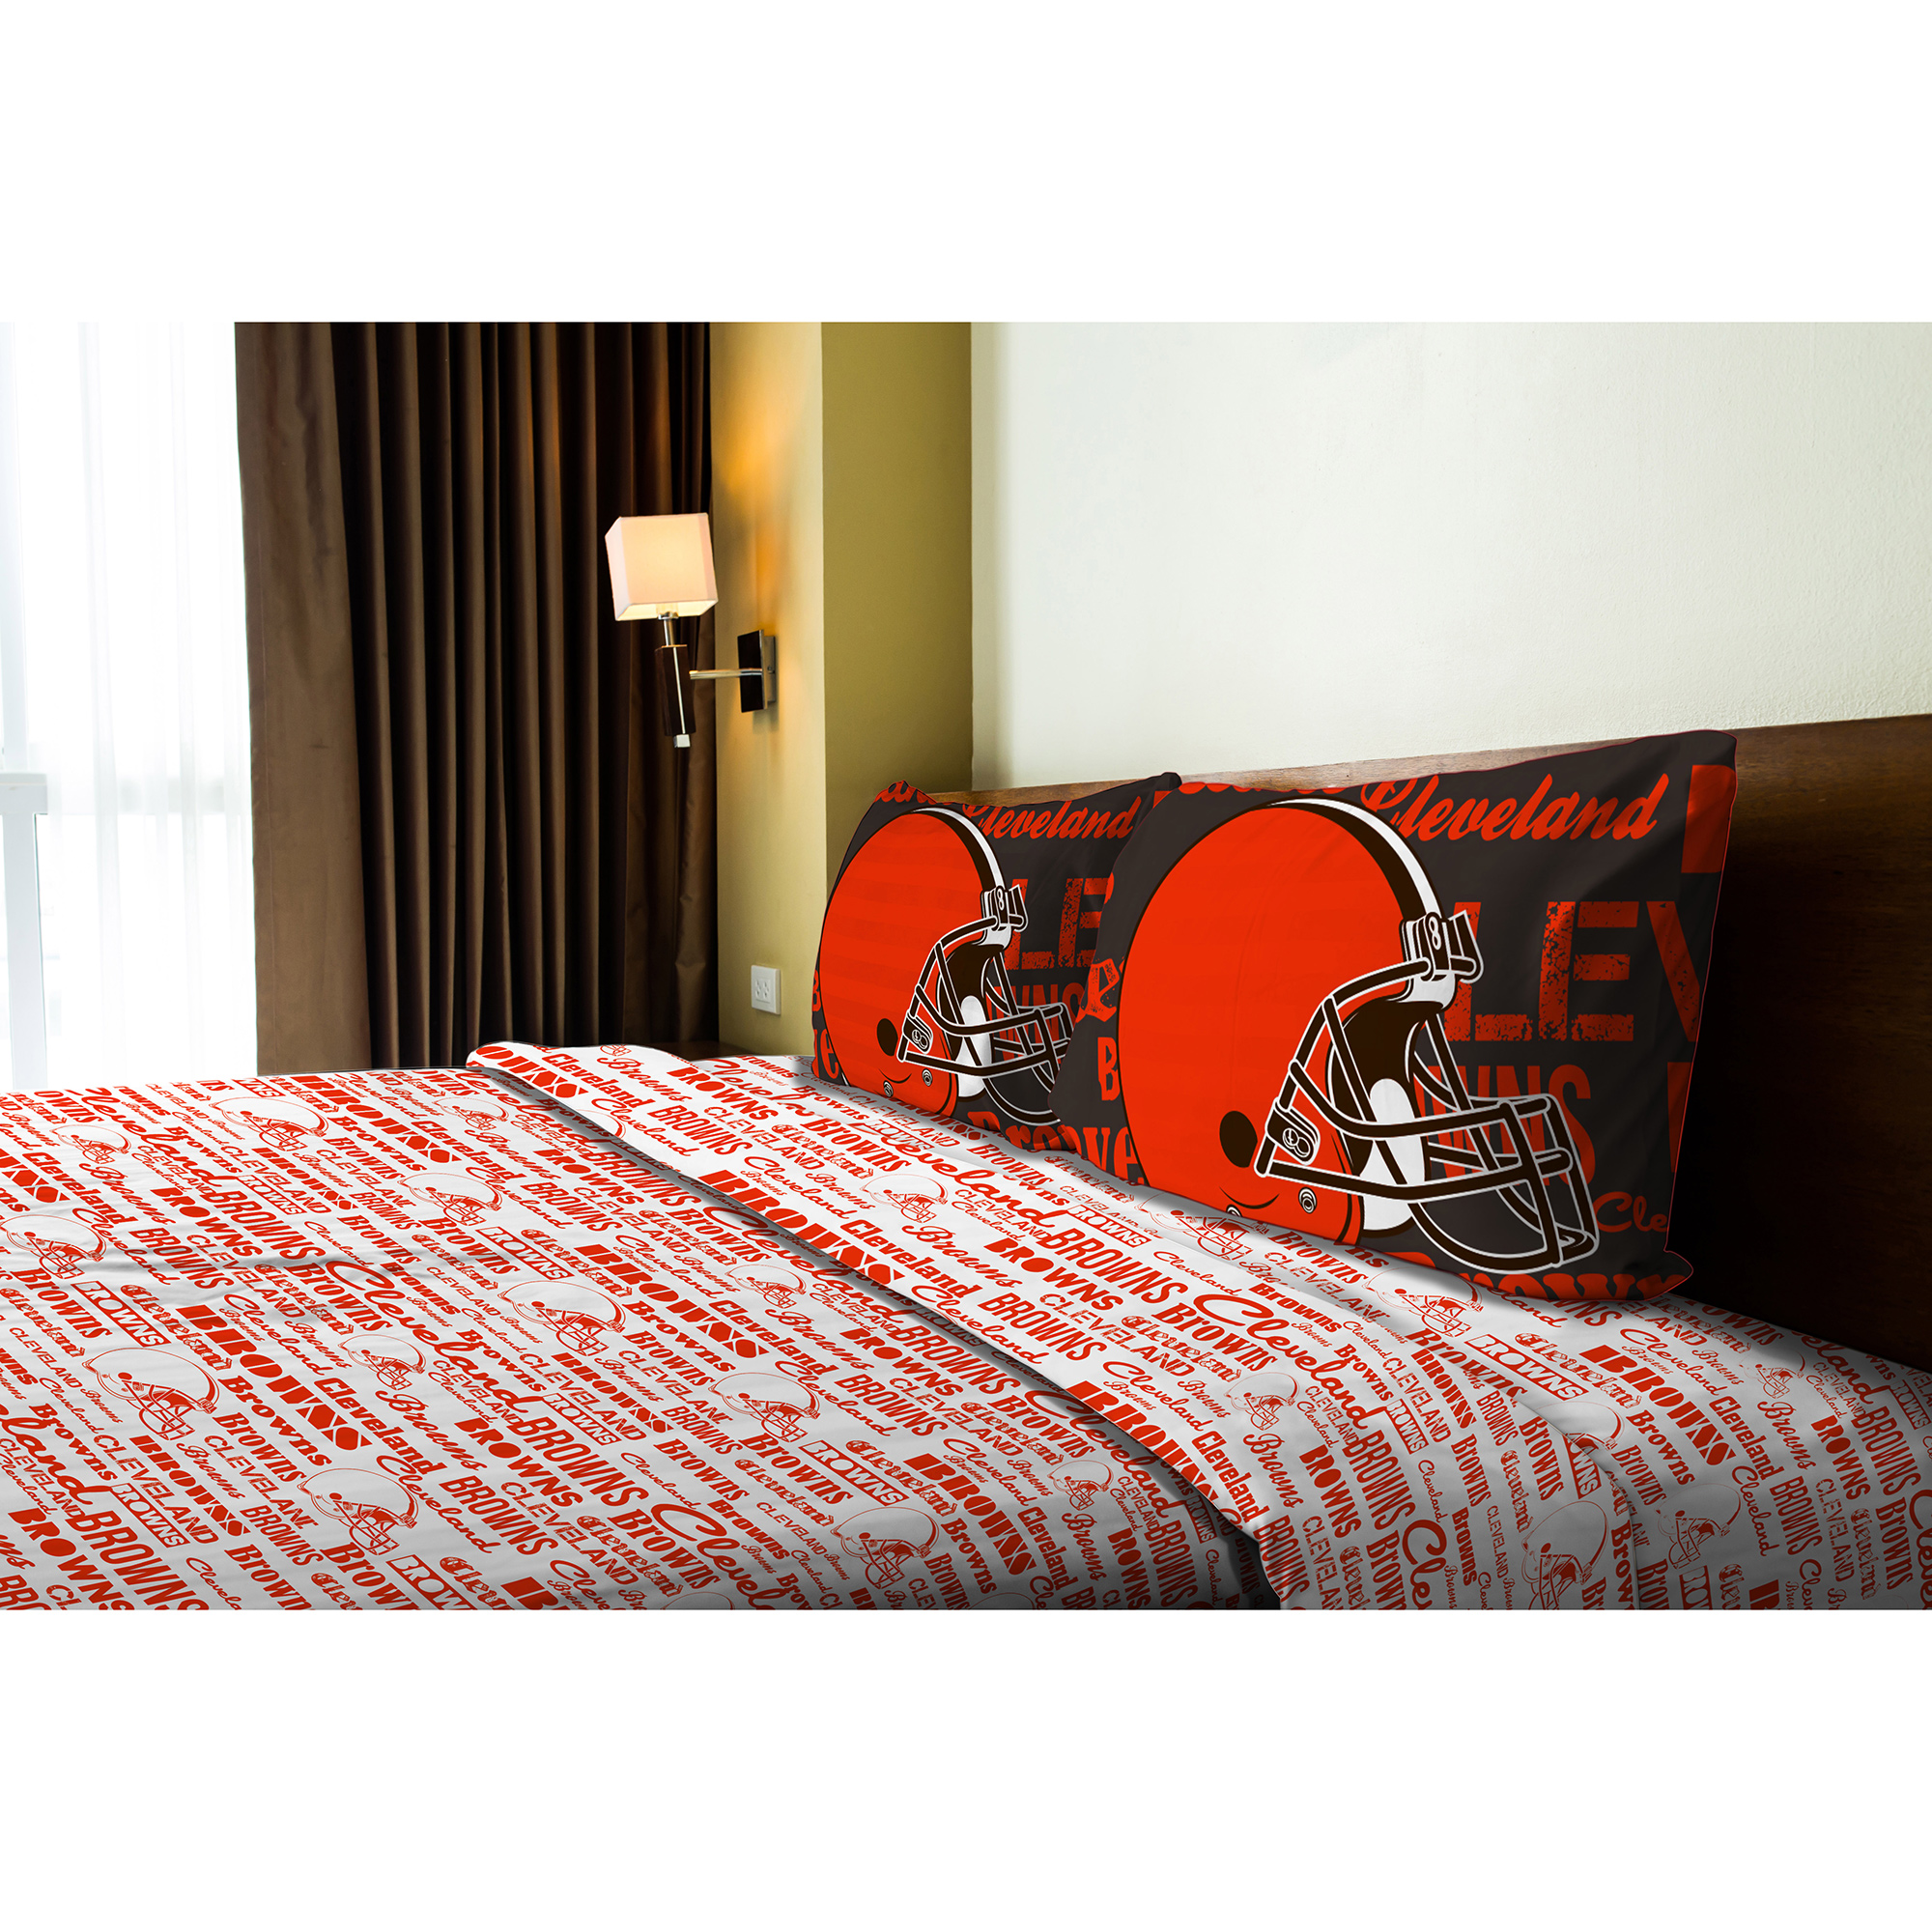 Cleveland Browns The Northwest Company Full Anthem Sheet Set - No Size